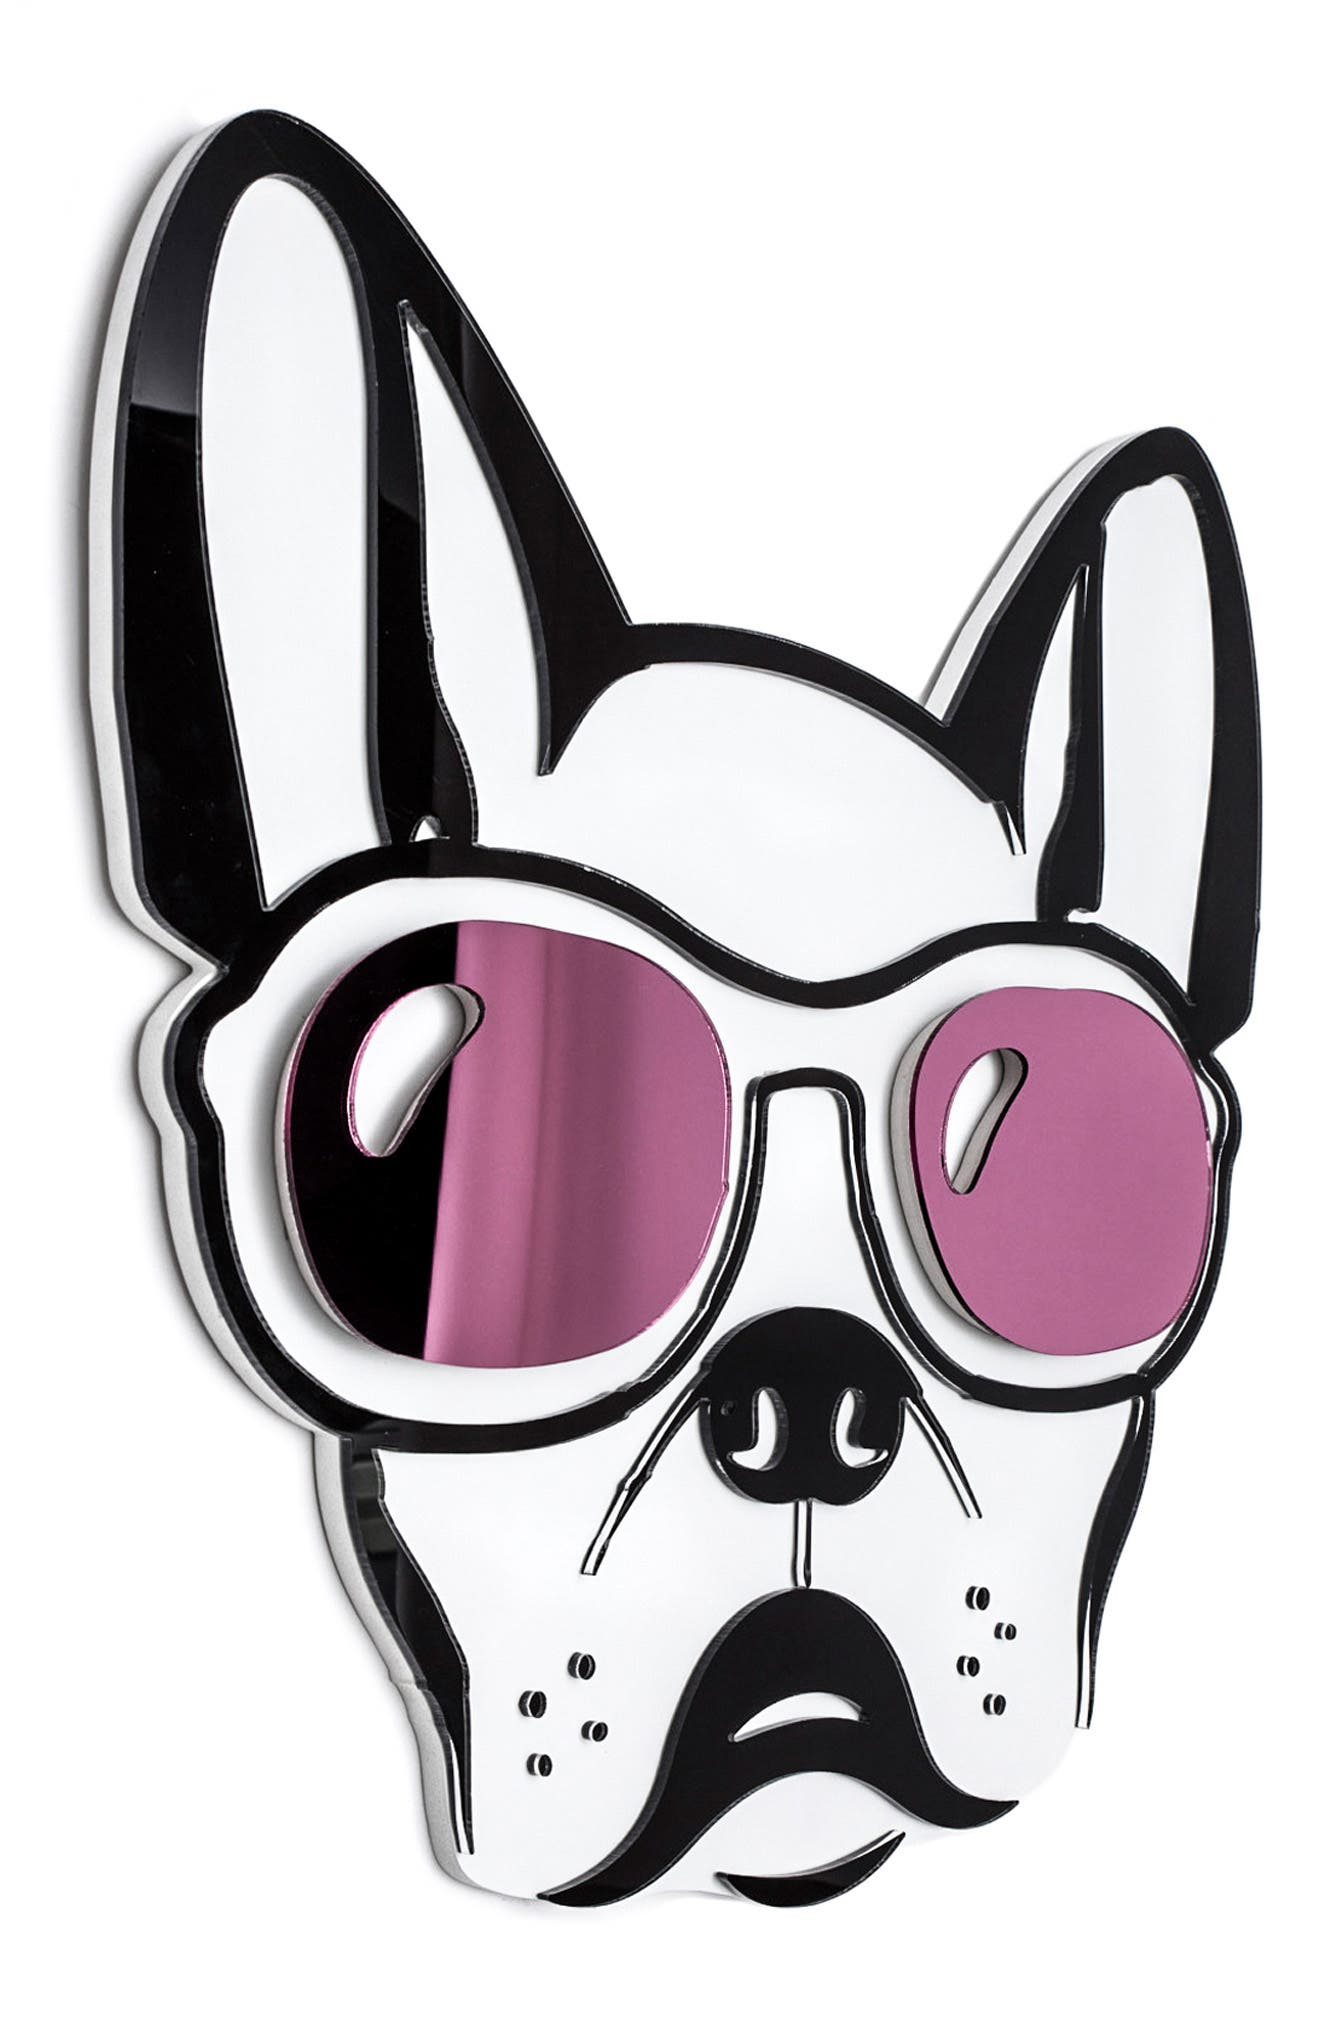 Cool Dog Wall Art,                             Alternate thumbnail 2, color,                             PURPLE BLACK AND WHITE